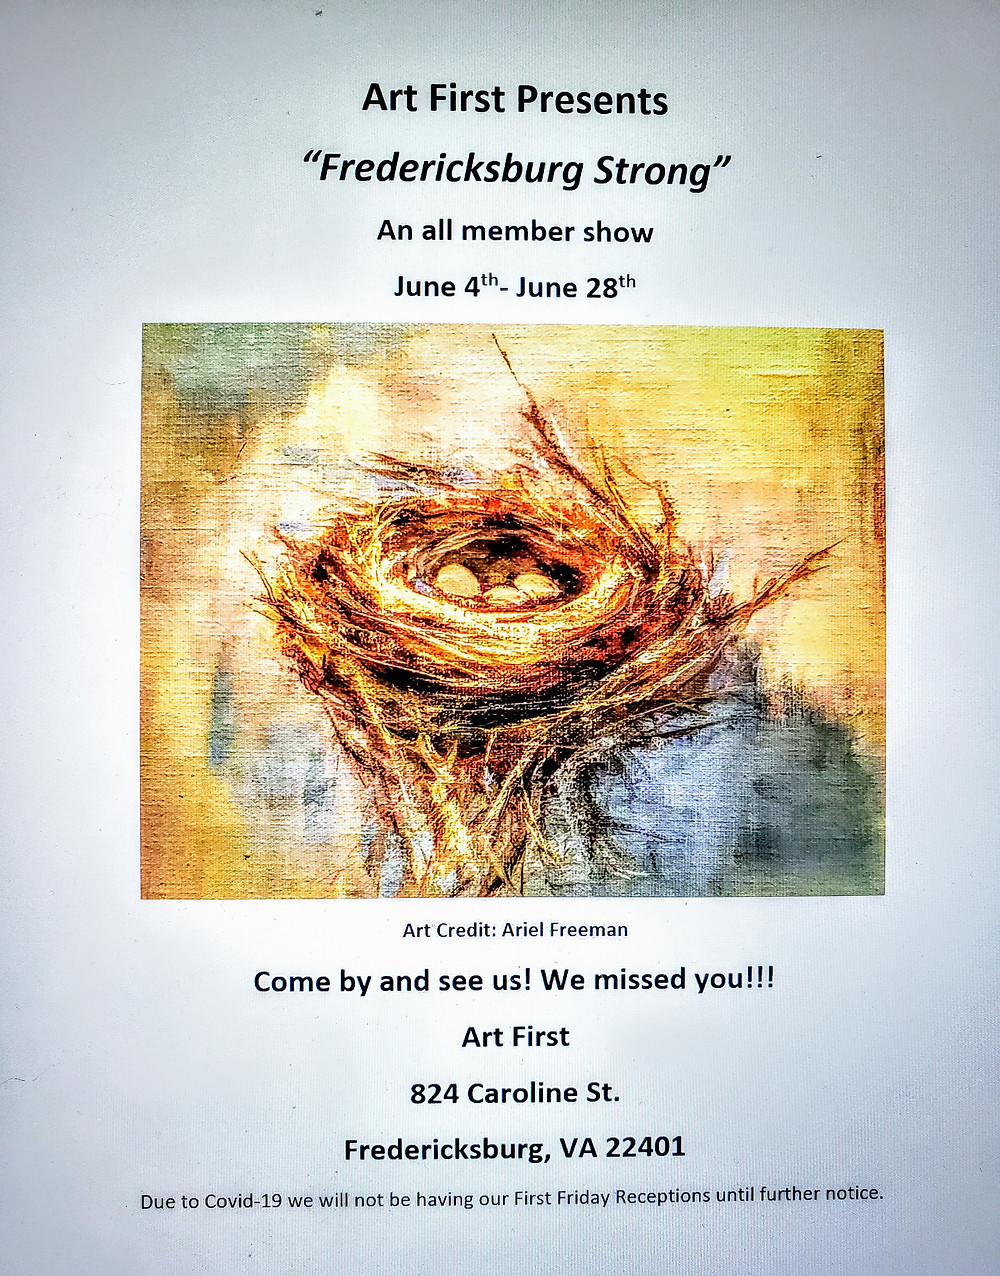 Art First is currently open Thursday-Sunday 11-5